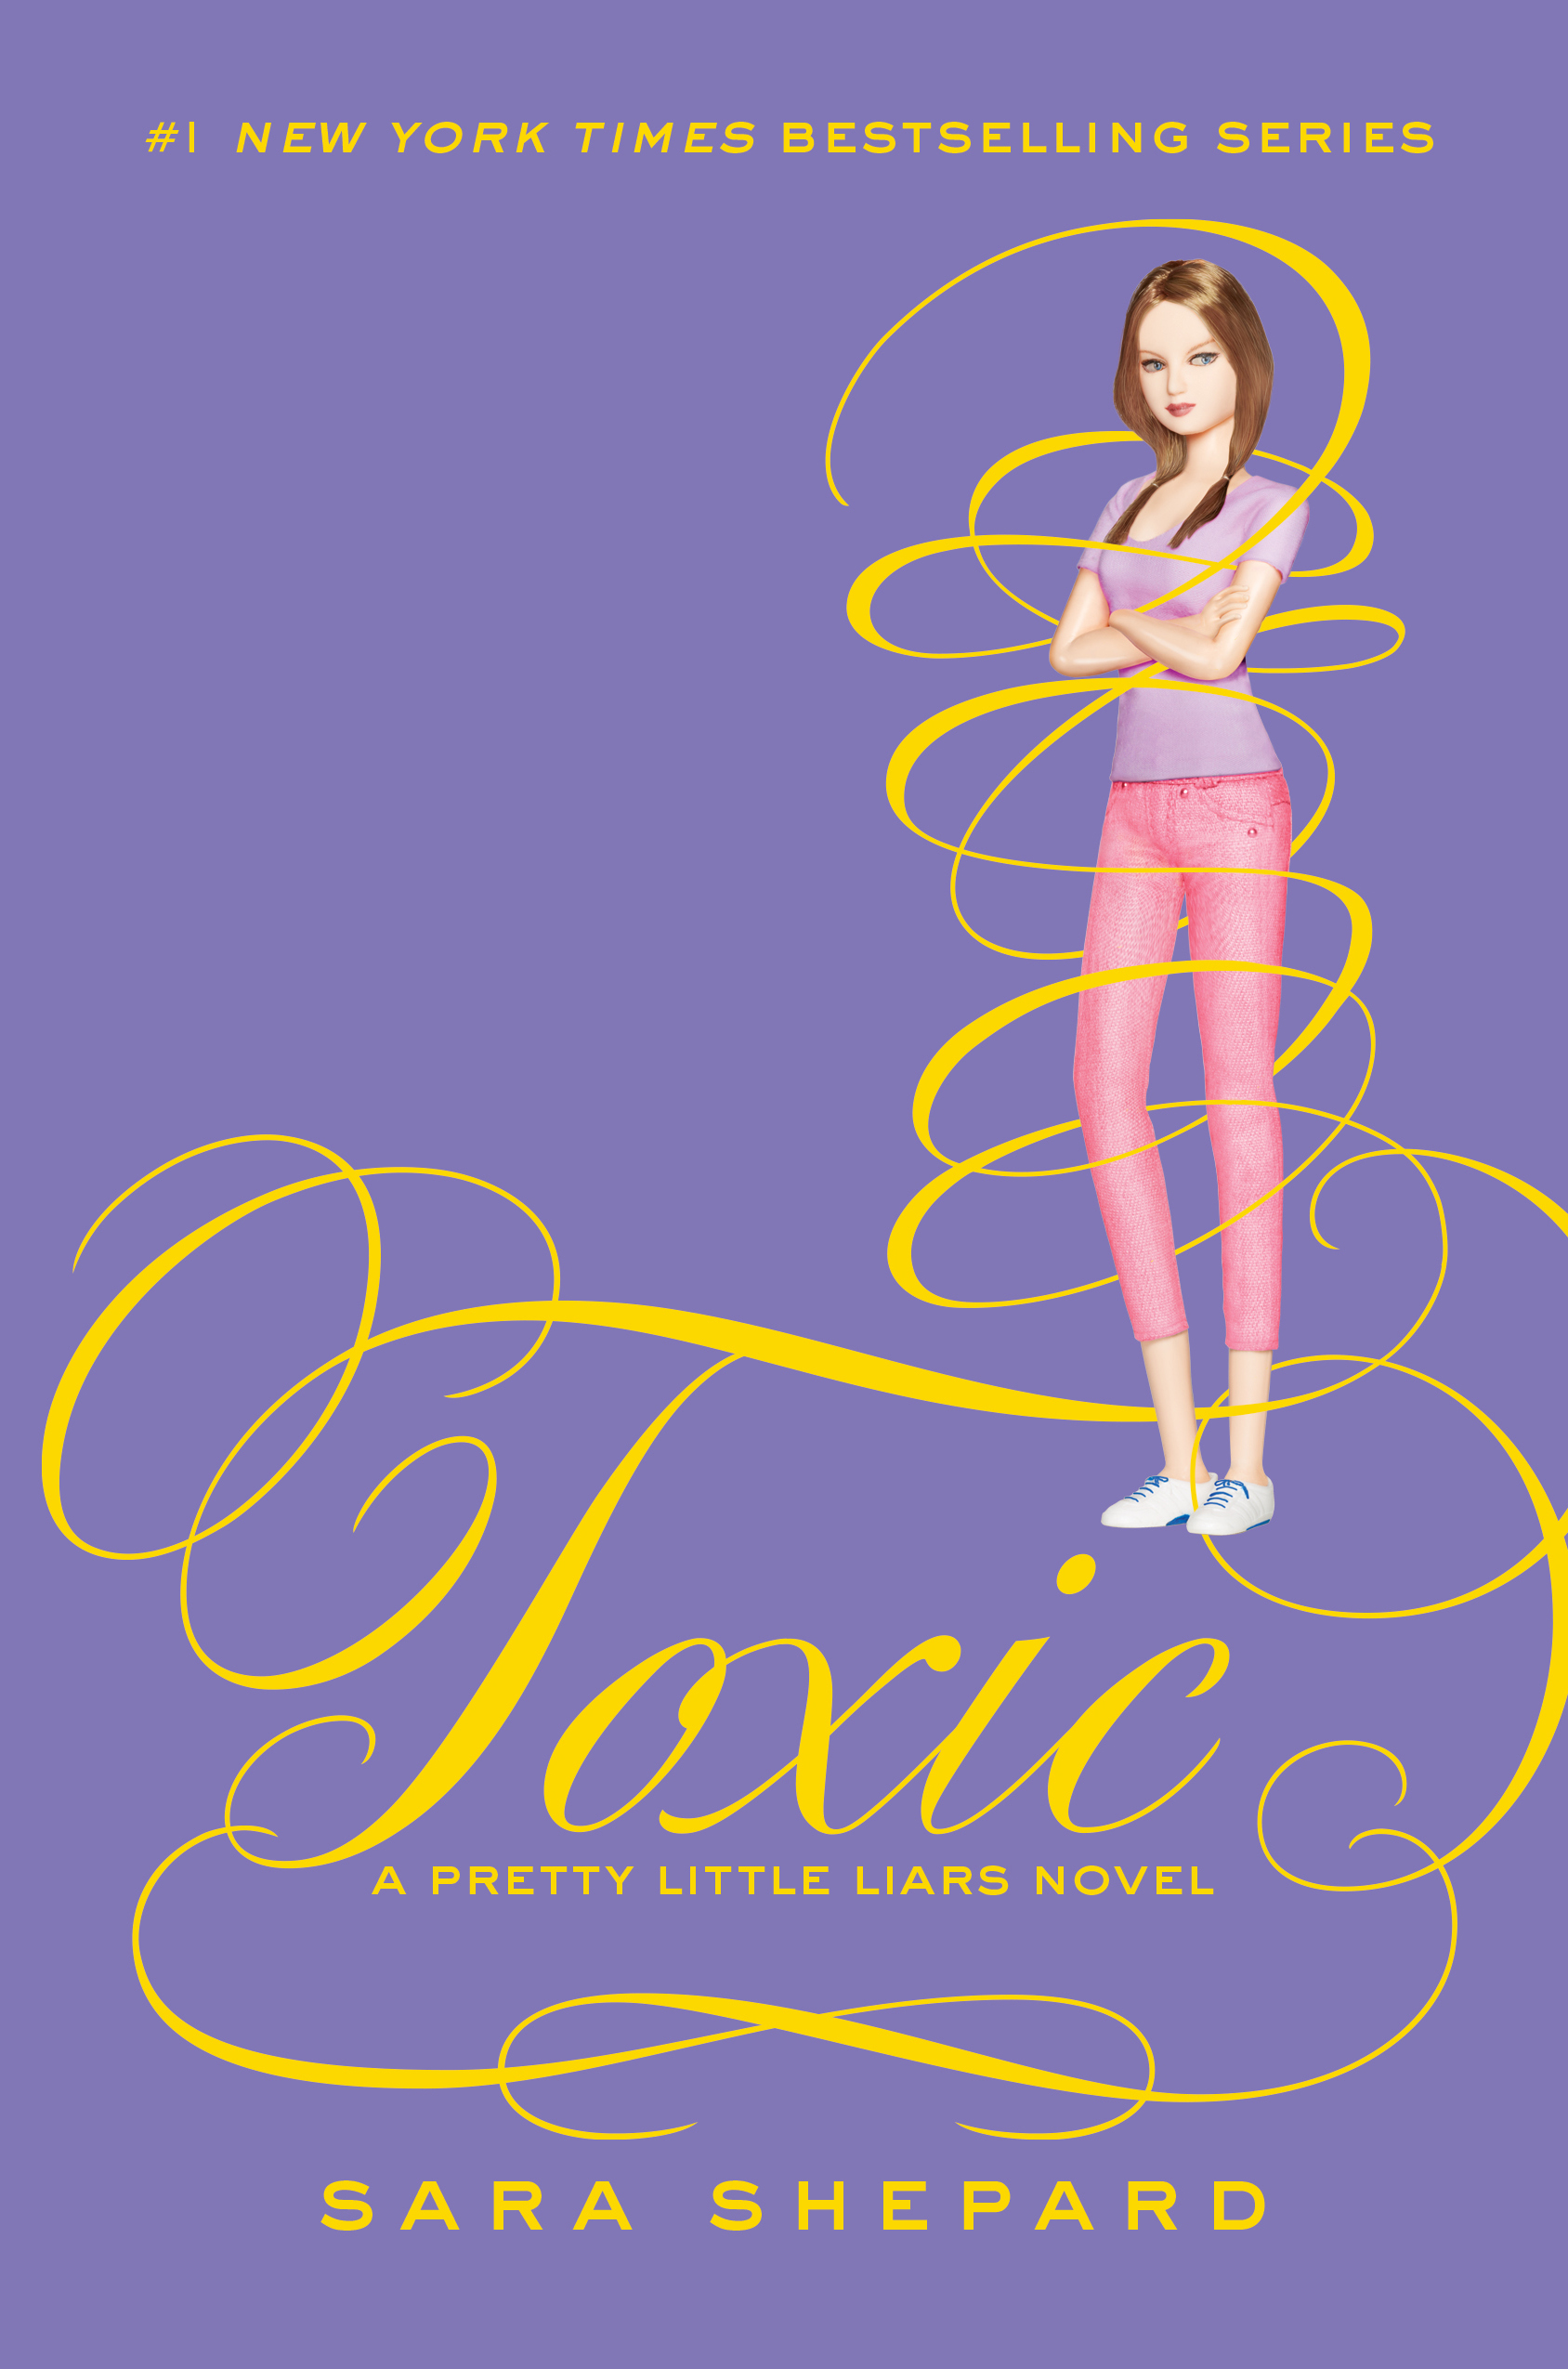 Pretty Little Liars Book Cover Characters ~ Toxic pretty little liars wiki fandom powered by wikia